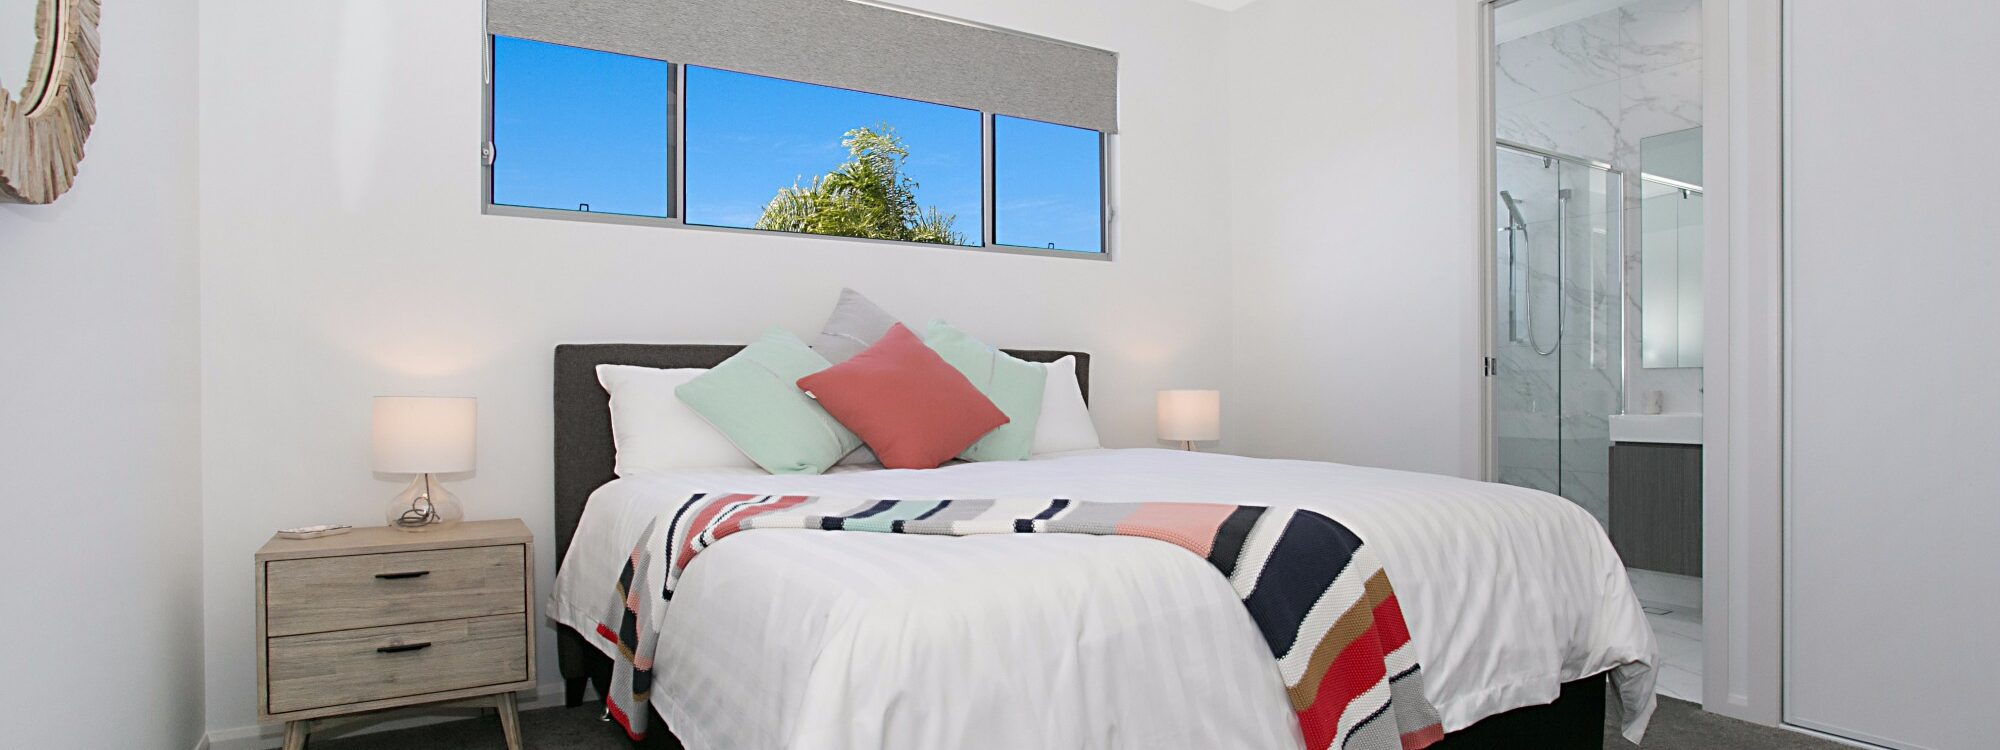 Pacific Breeze - Broadbeach - Bedroom 2